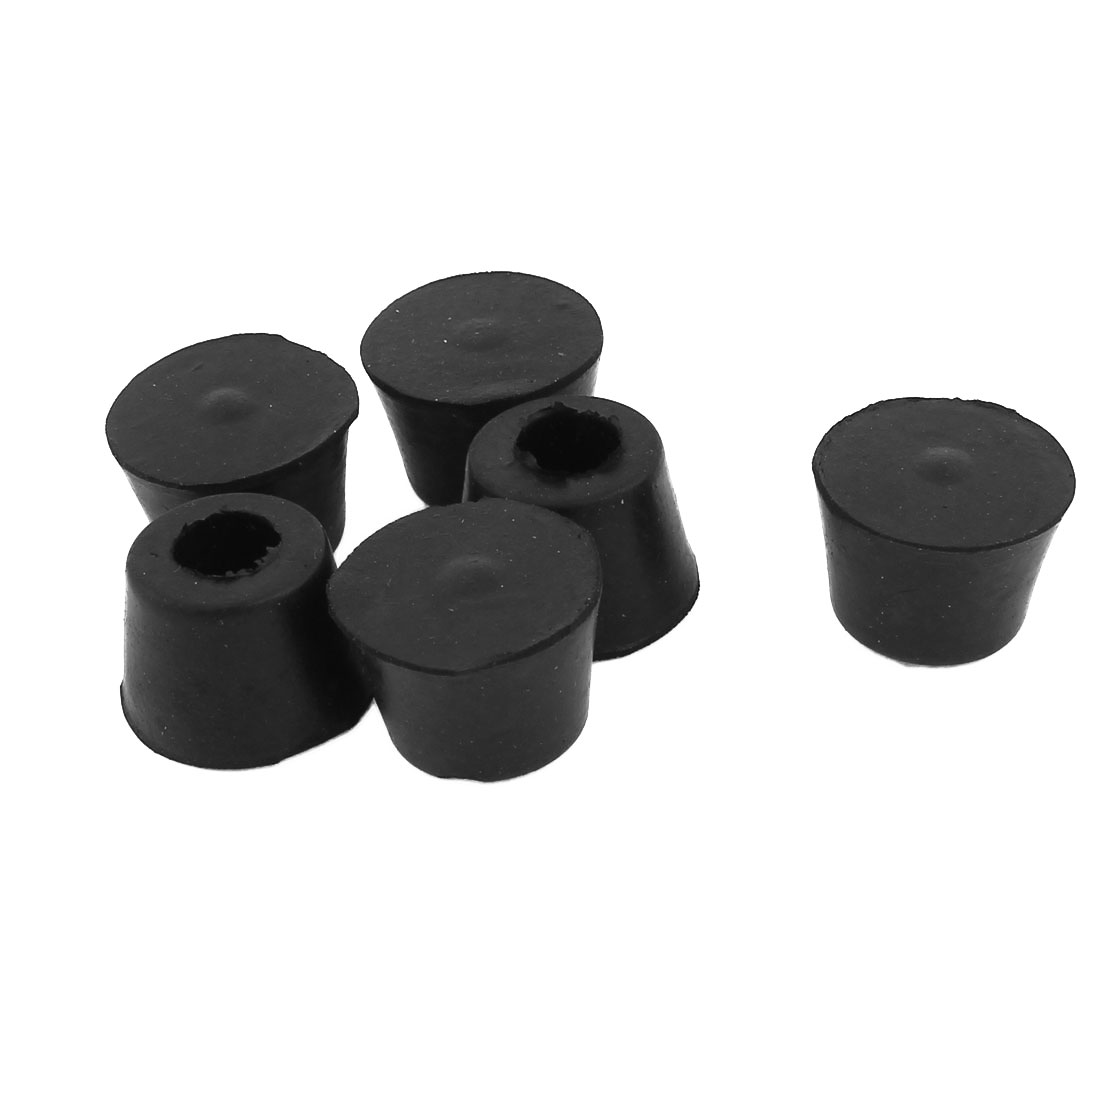 6 Pcs Black Rubber Furniture Desk Foot Pads 25x15mm